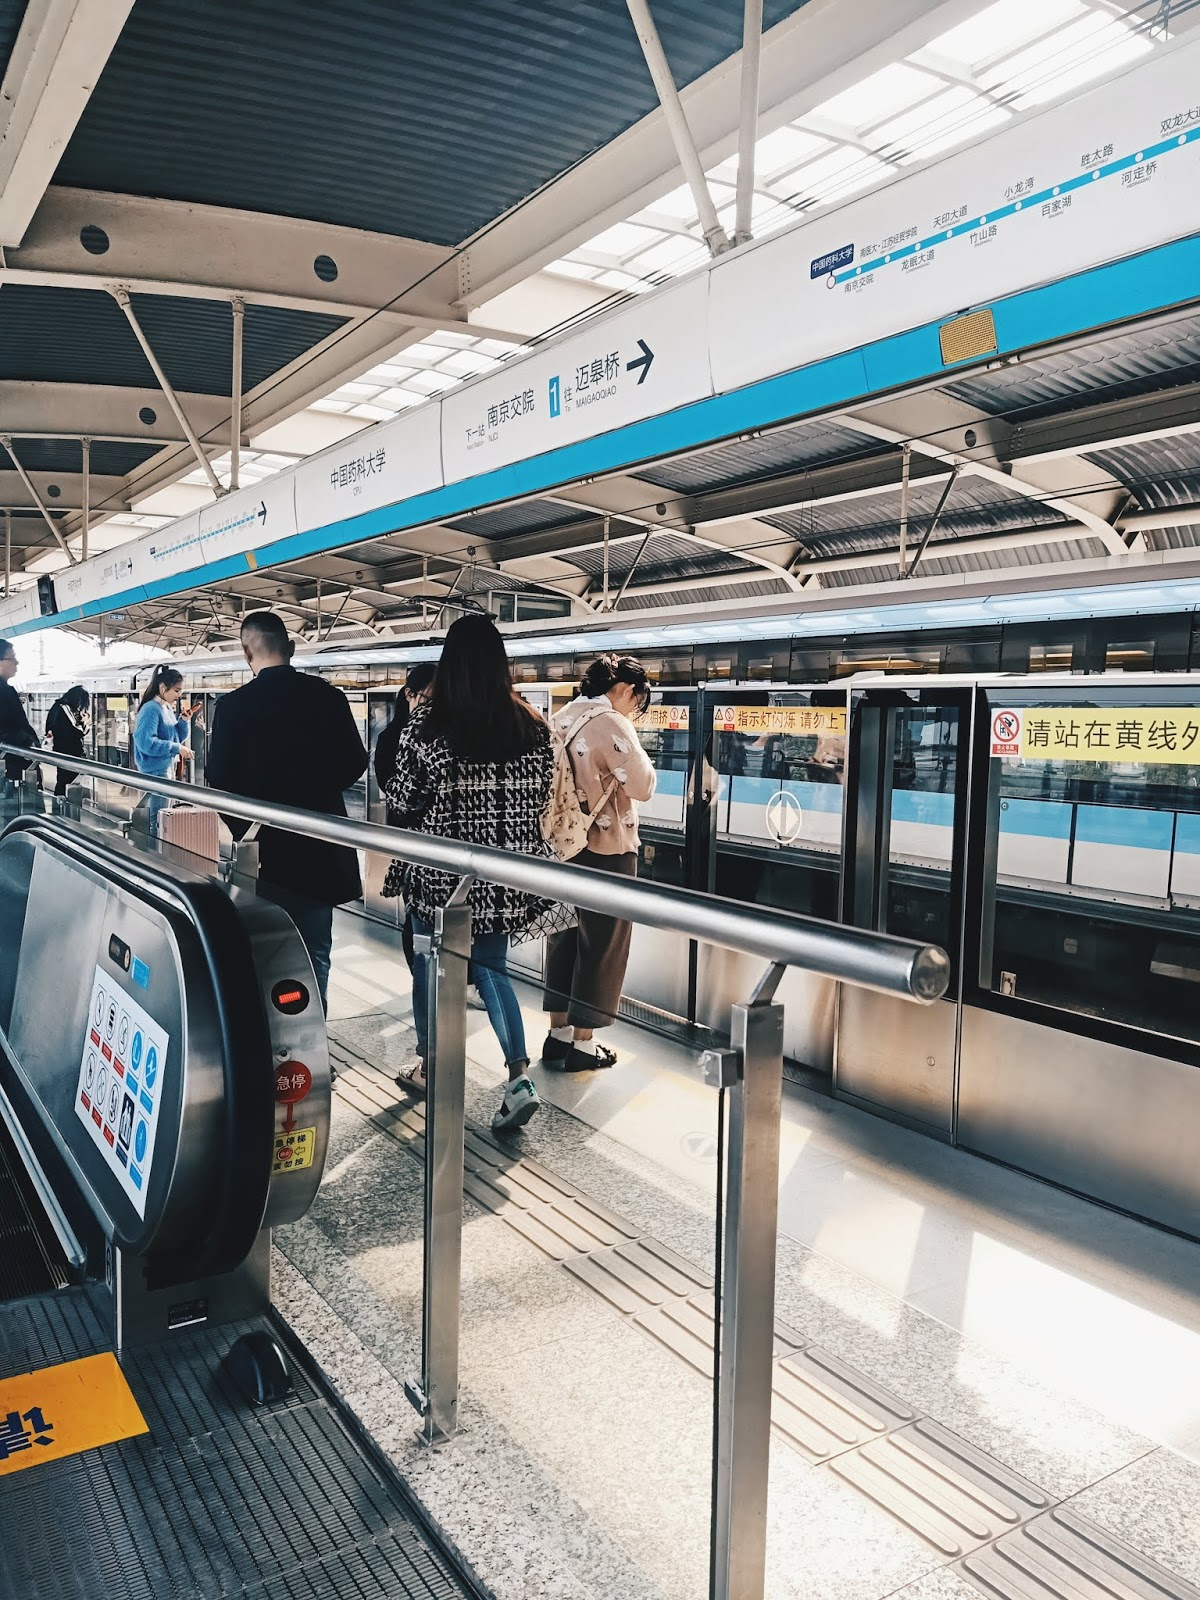 Nanjing Metro - Fastest and Easiest Way to Move!